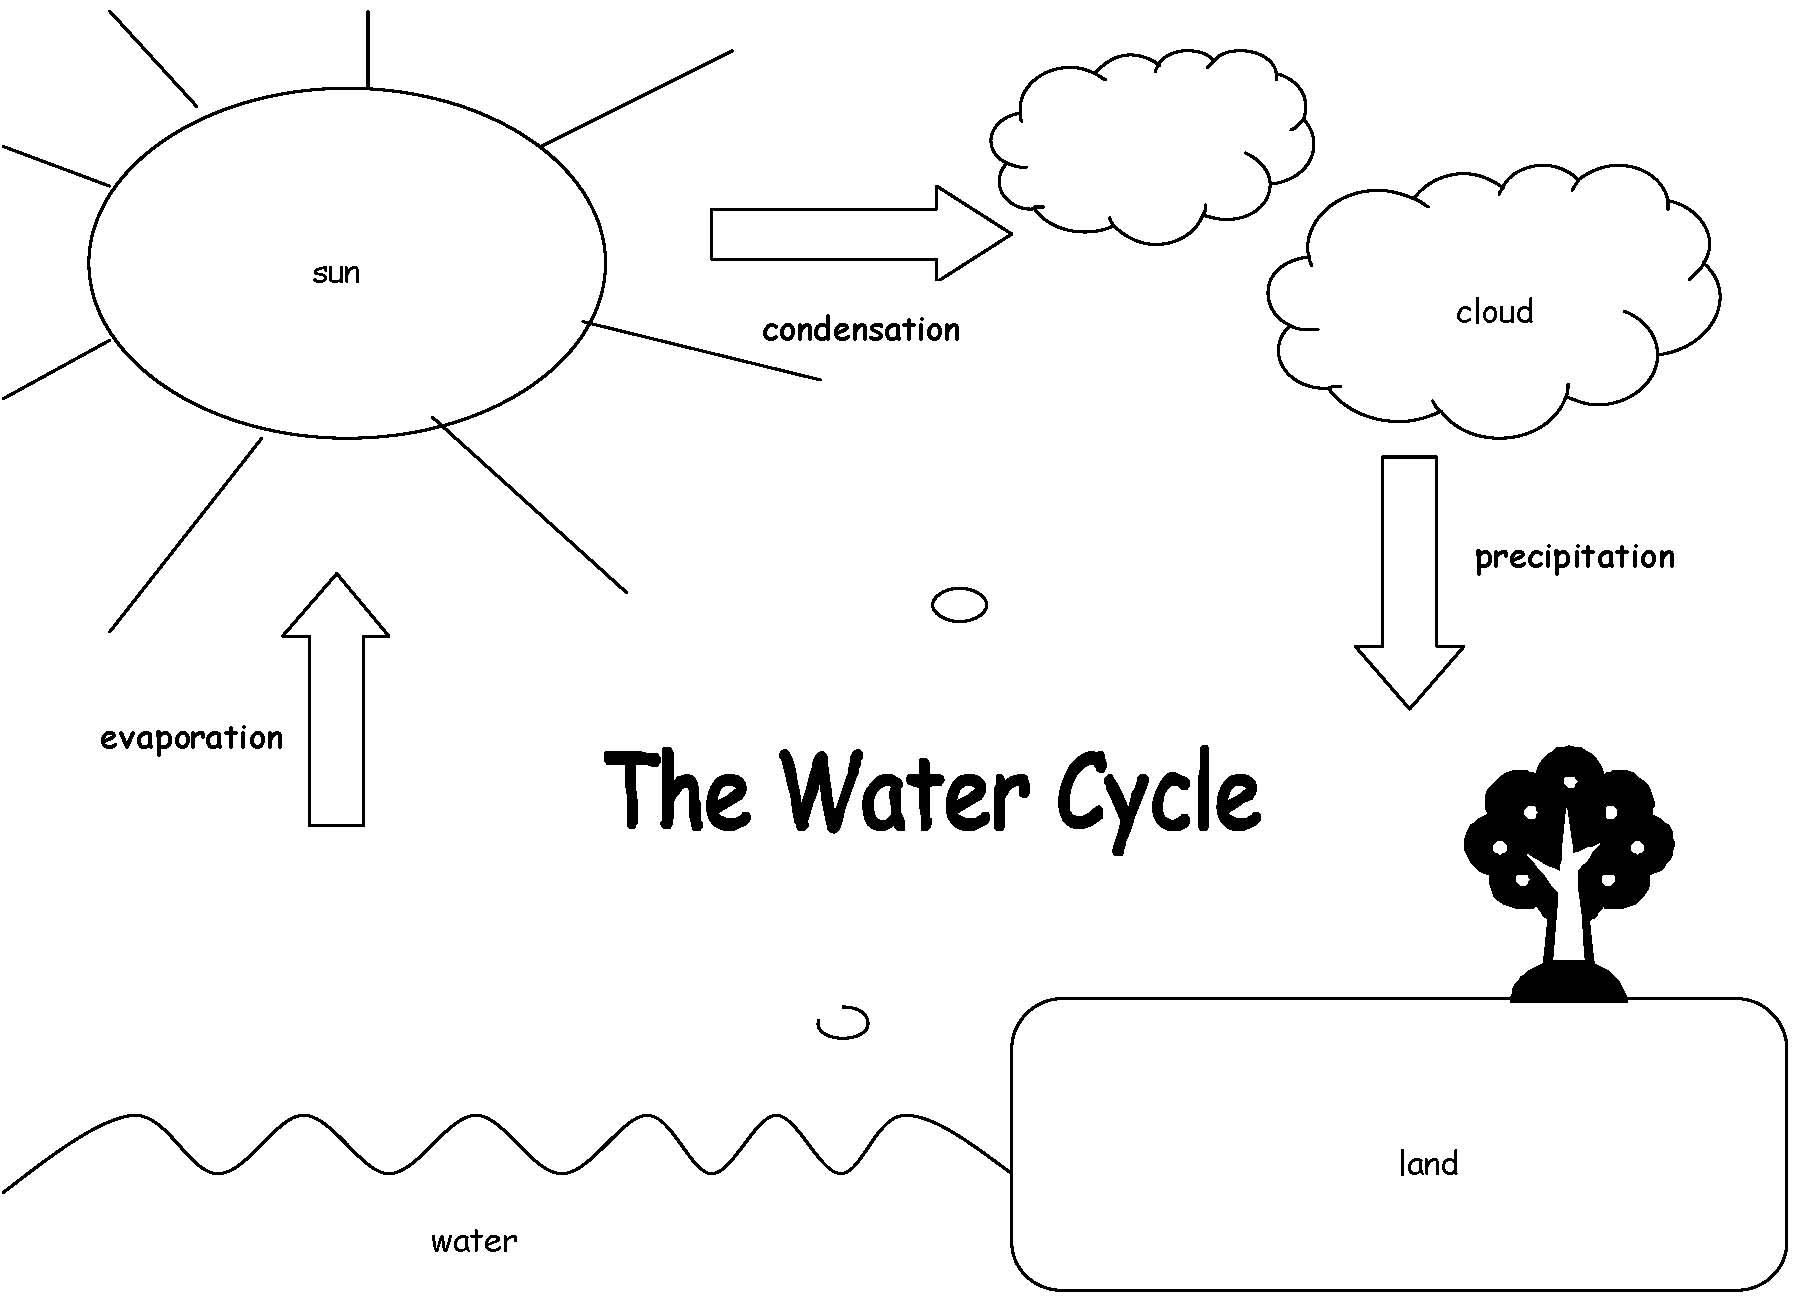 worksheet Water Worksheet 10 best images about water cycle theme on pinterest preschool science experiments graphic organizers and lesson plans